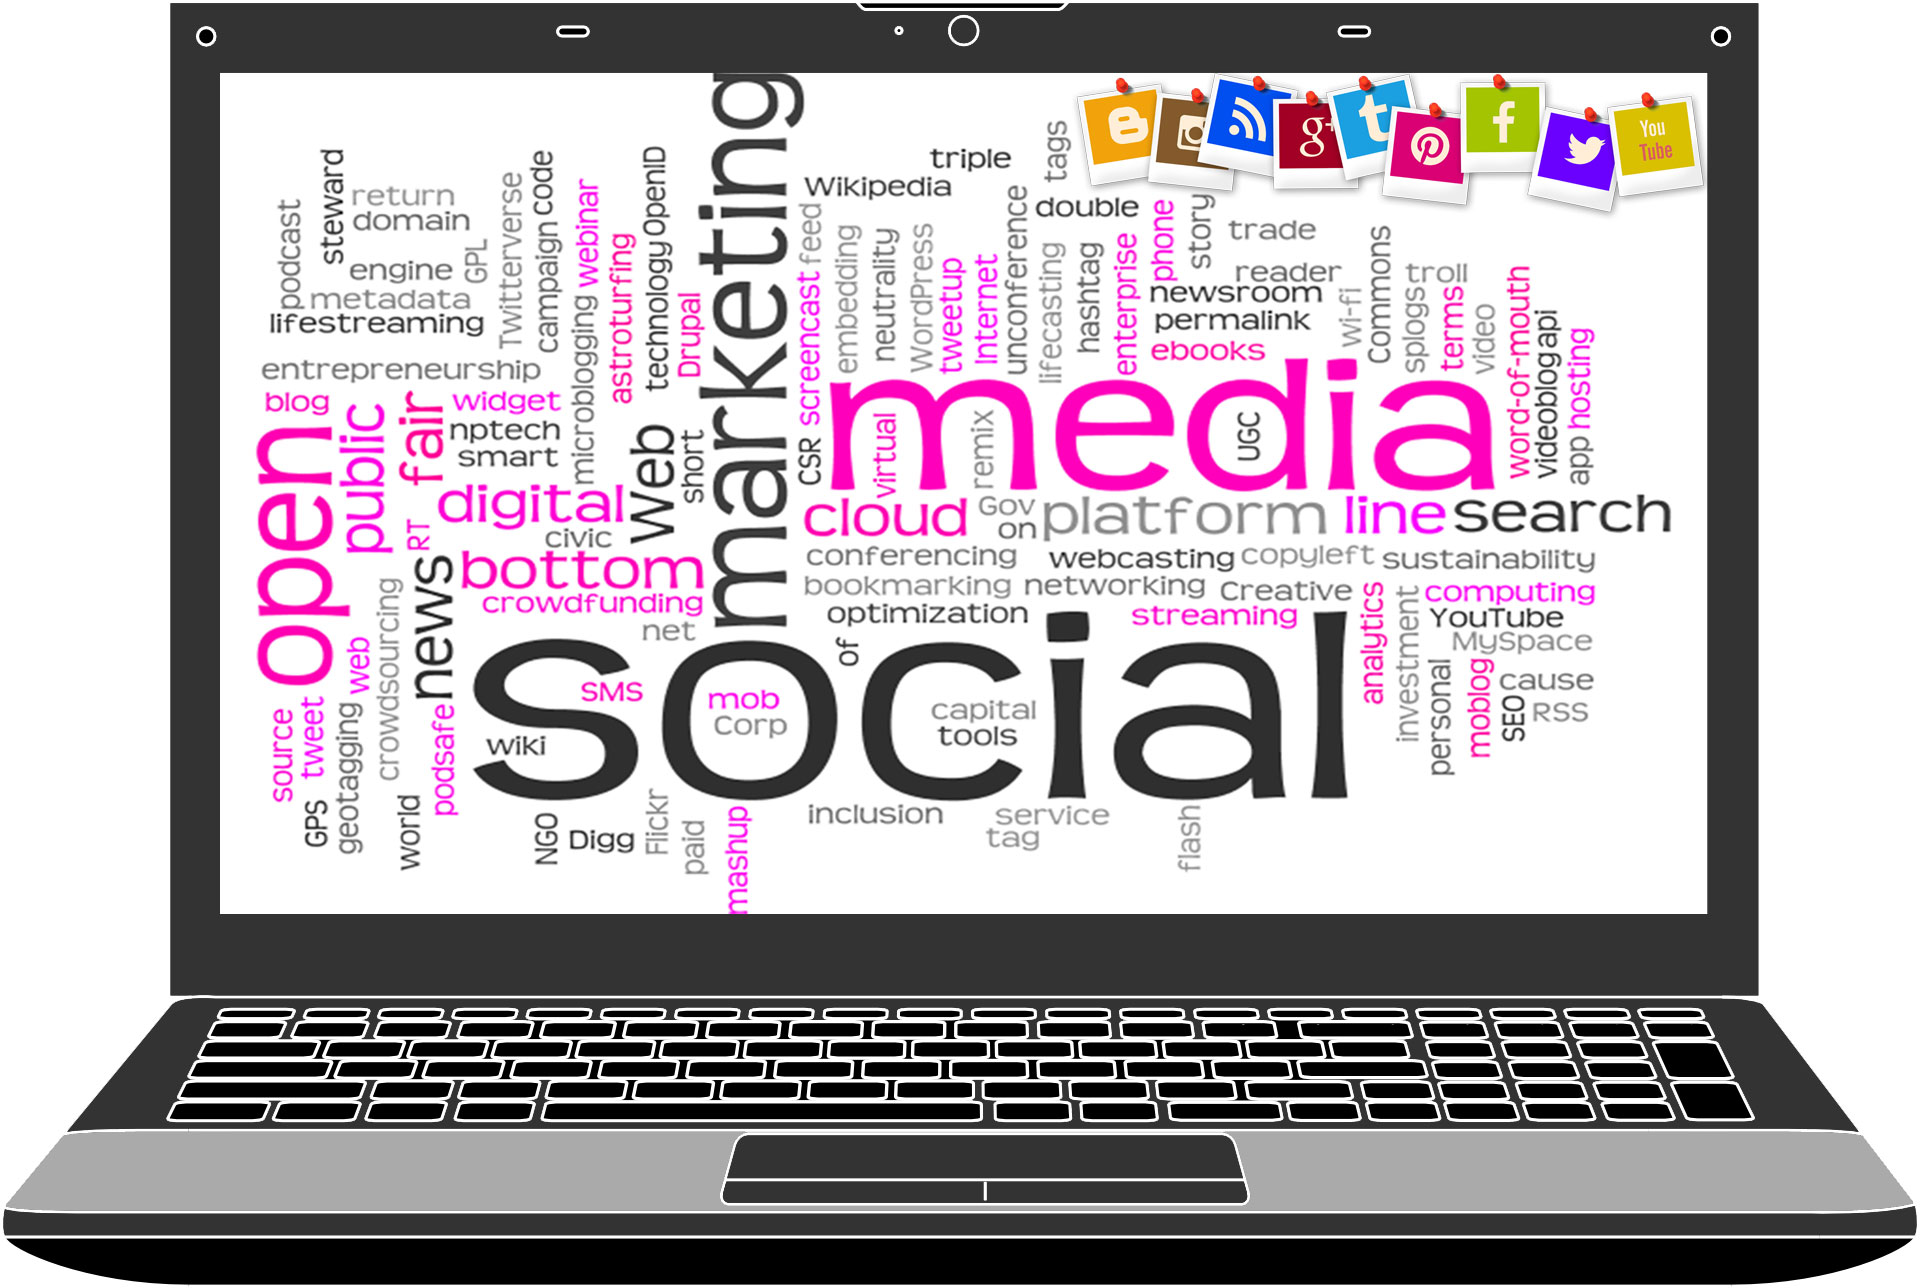 Why Social Media Marketing Is Important For SMEs?